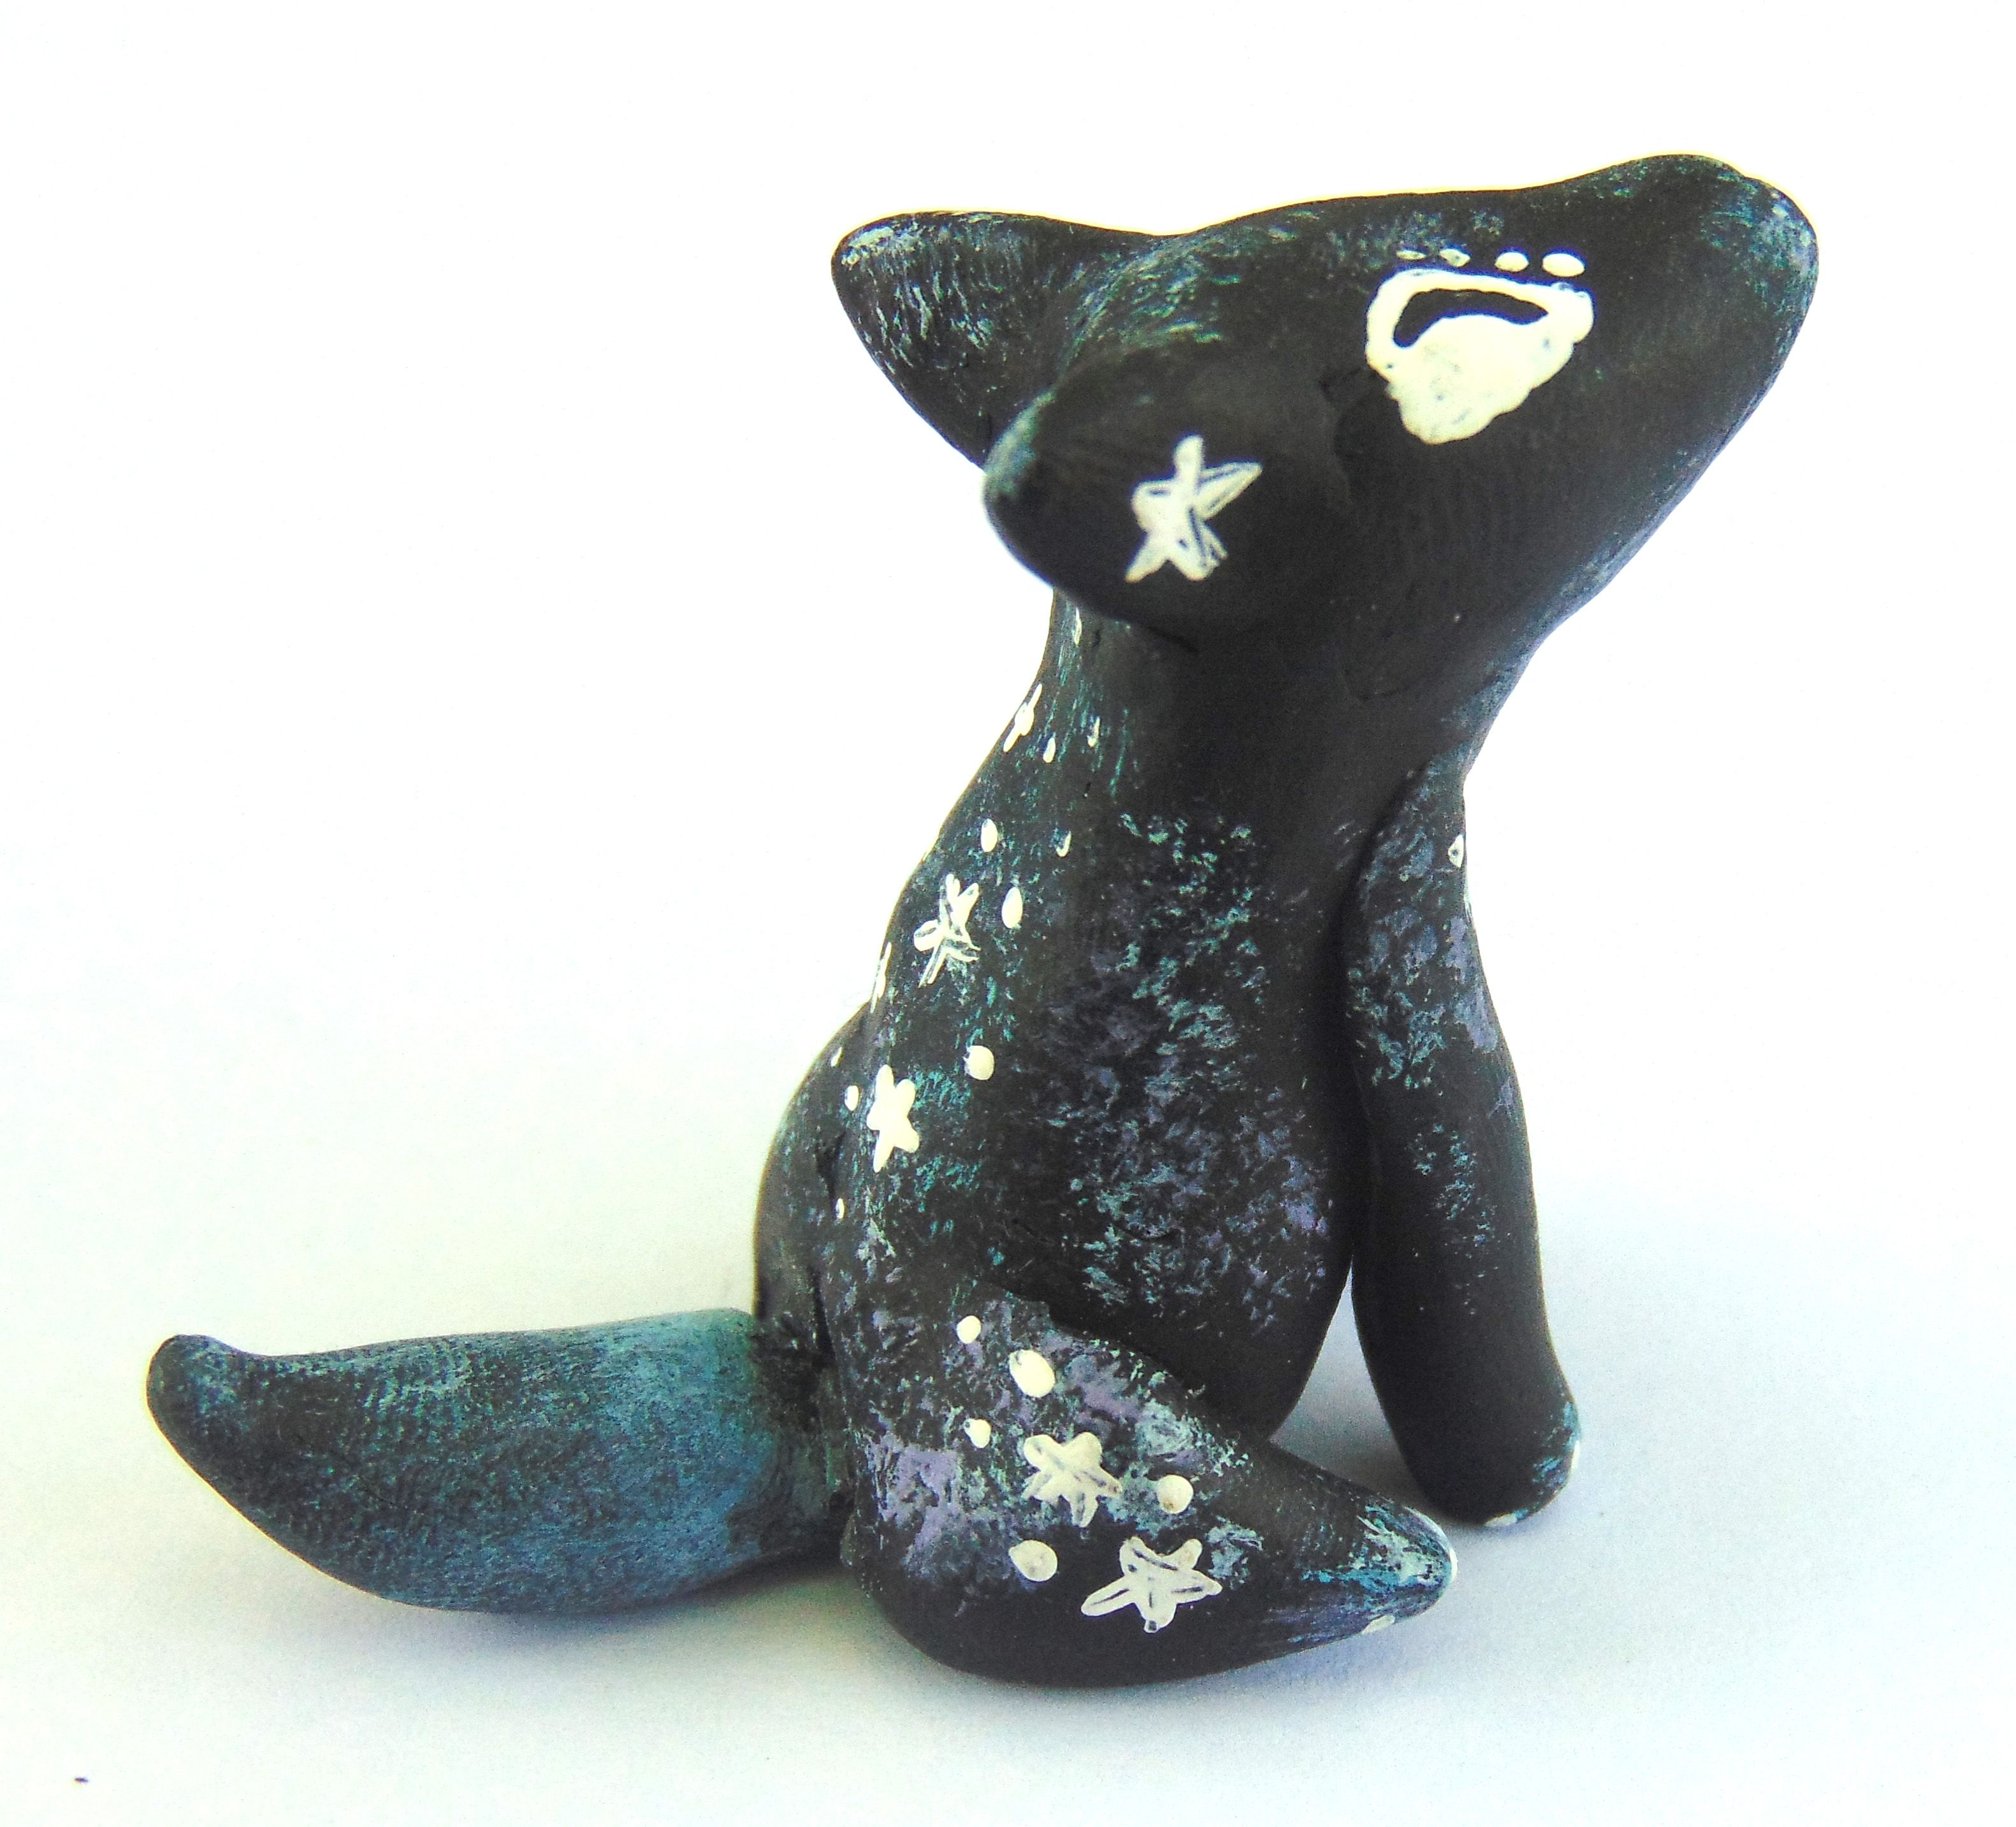 paints miniature galaxy stars howling painted sculpture wolf handmade polymer animal clay mini acrylic handcrafted sculpey